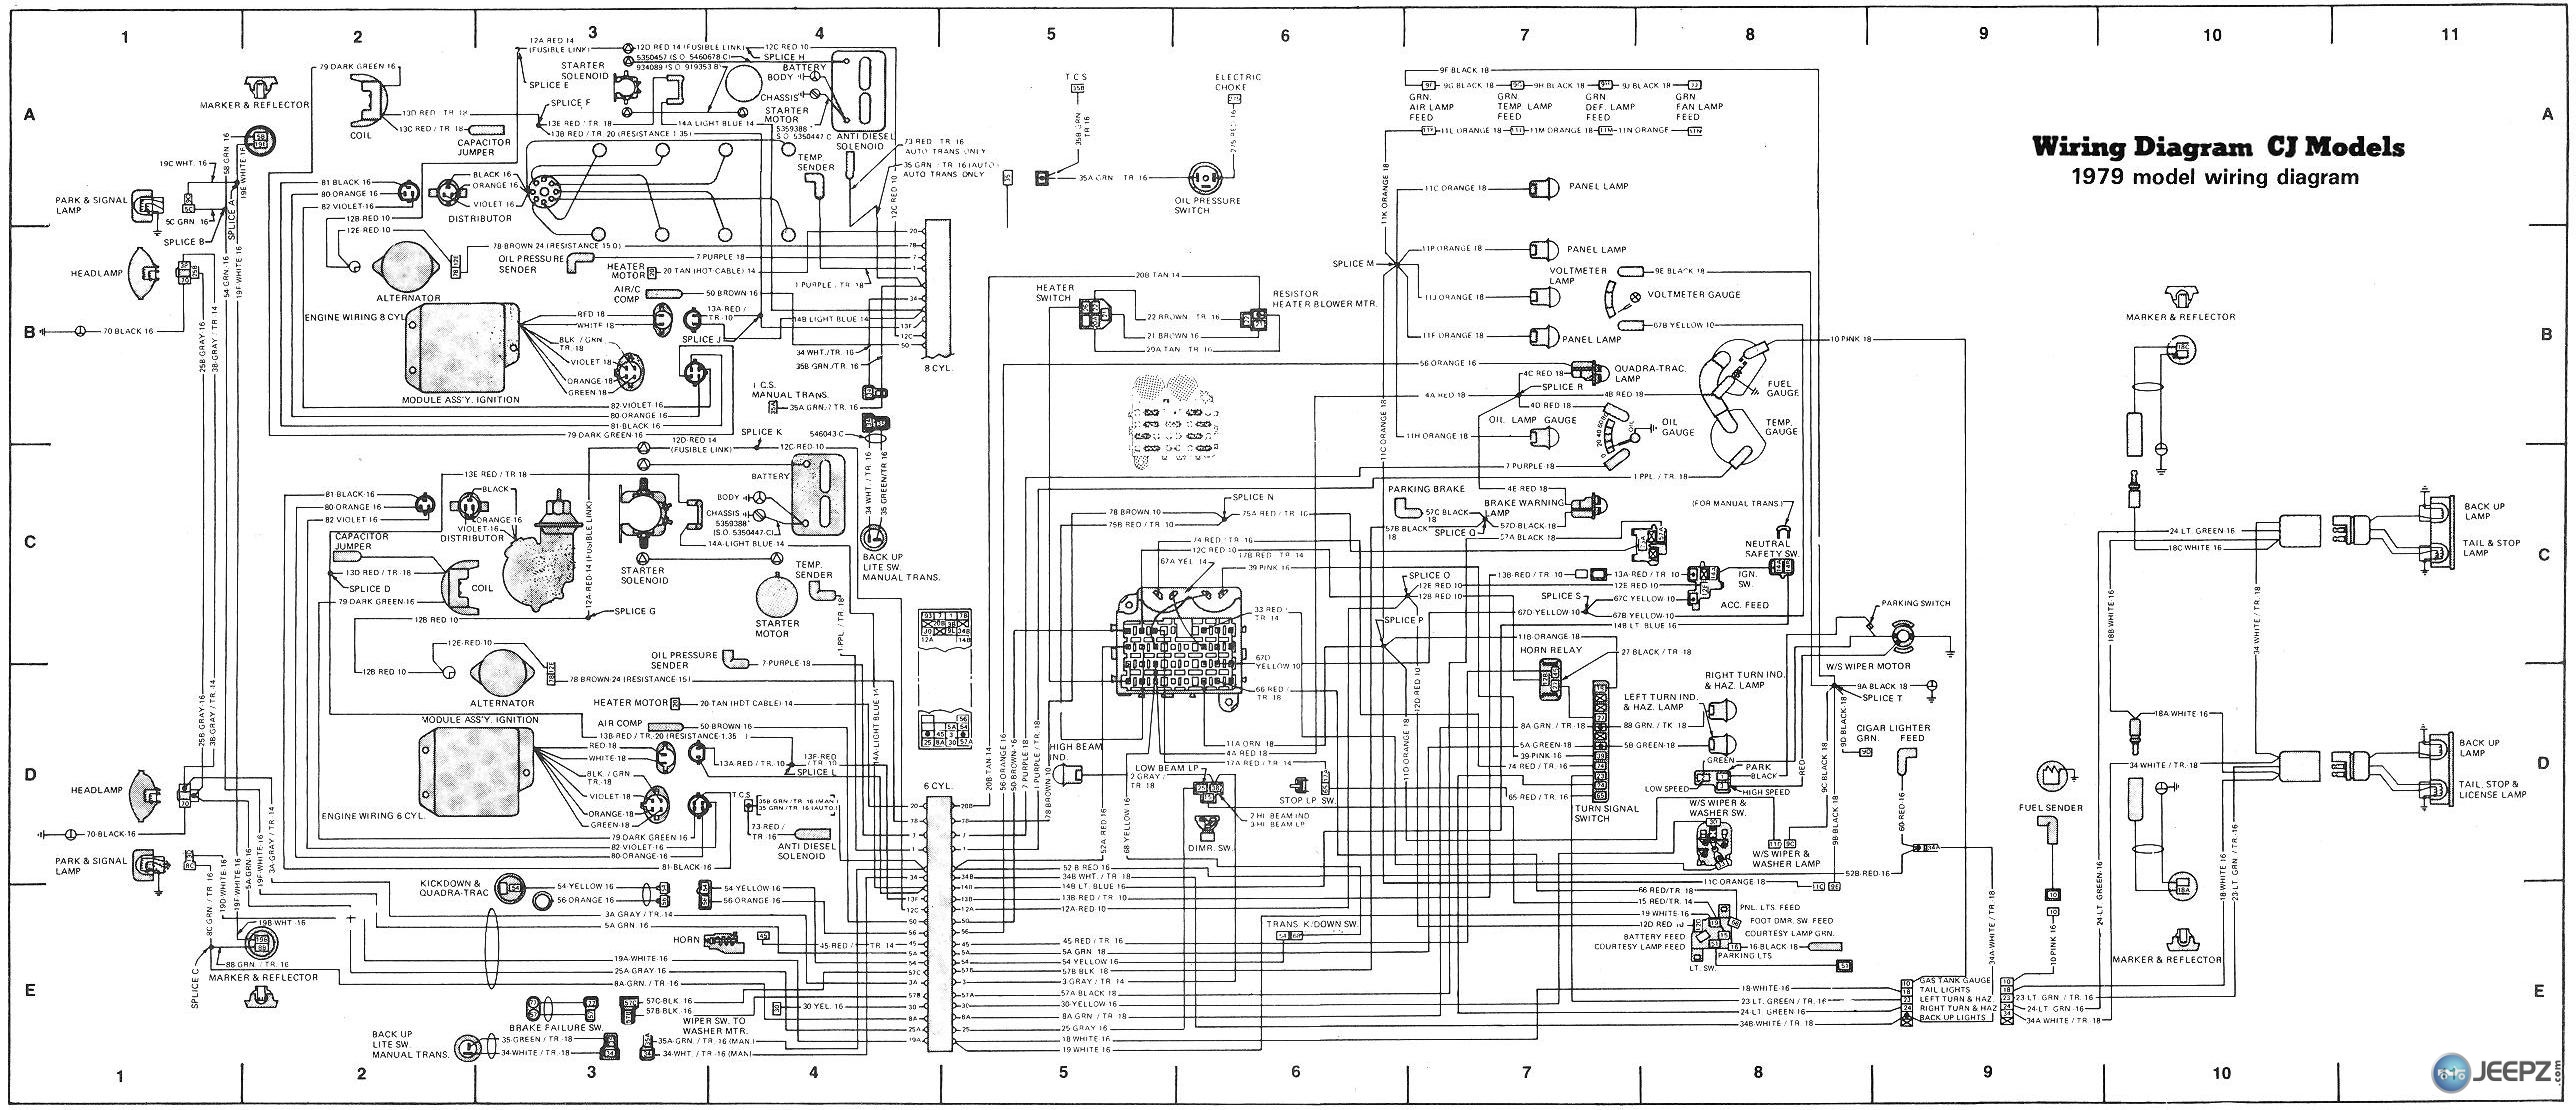 2748d1243285147 cj headlight wiring colors cj wiring diagram 1979 1993 jeep cherokee wiring diagram jeep ignition wiring diagrams 1993 jeep wrangler wiring diagram at gsmx.co